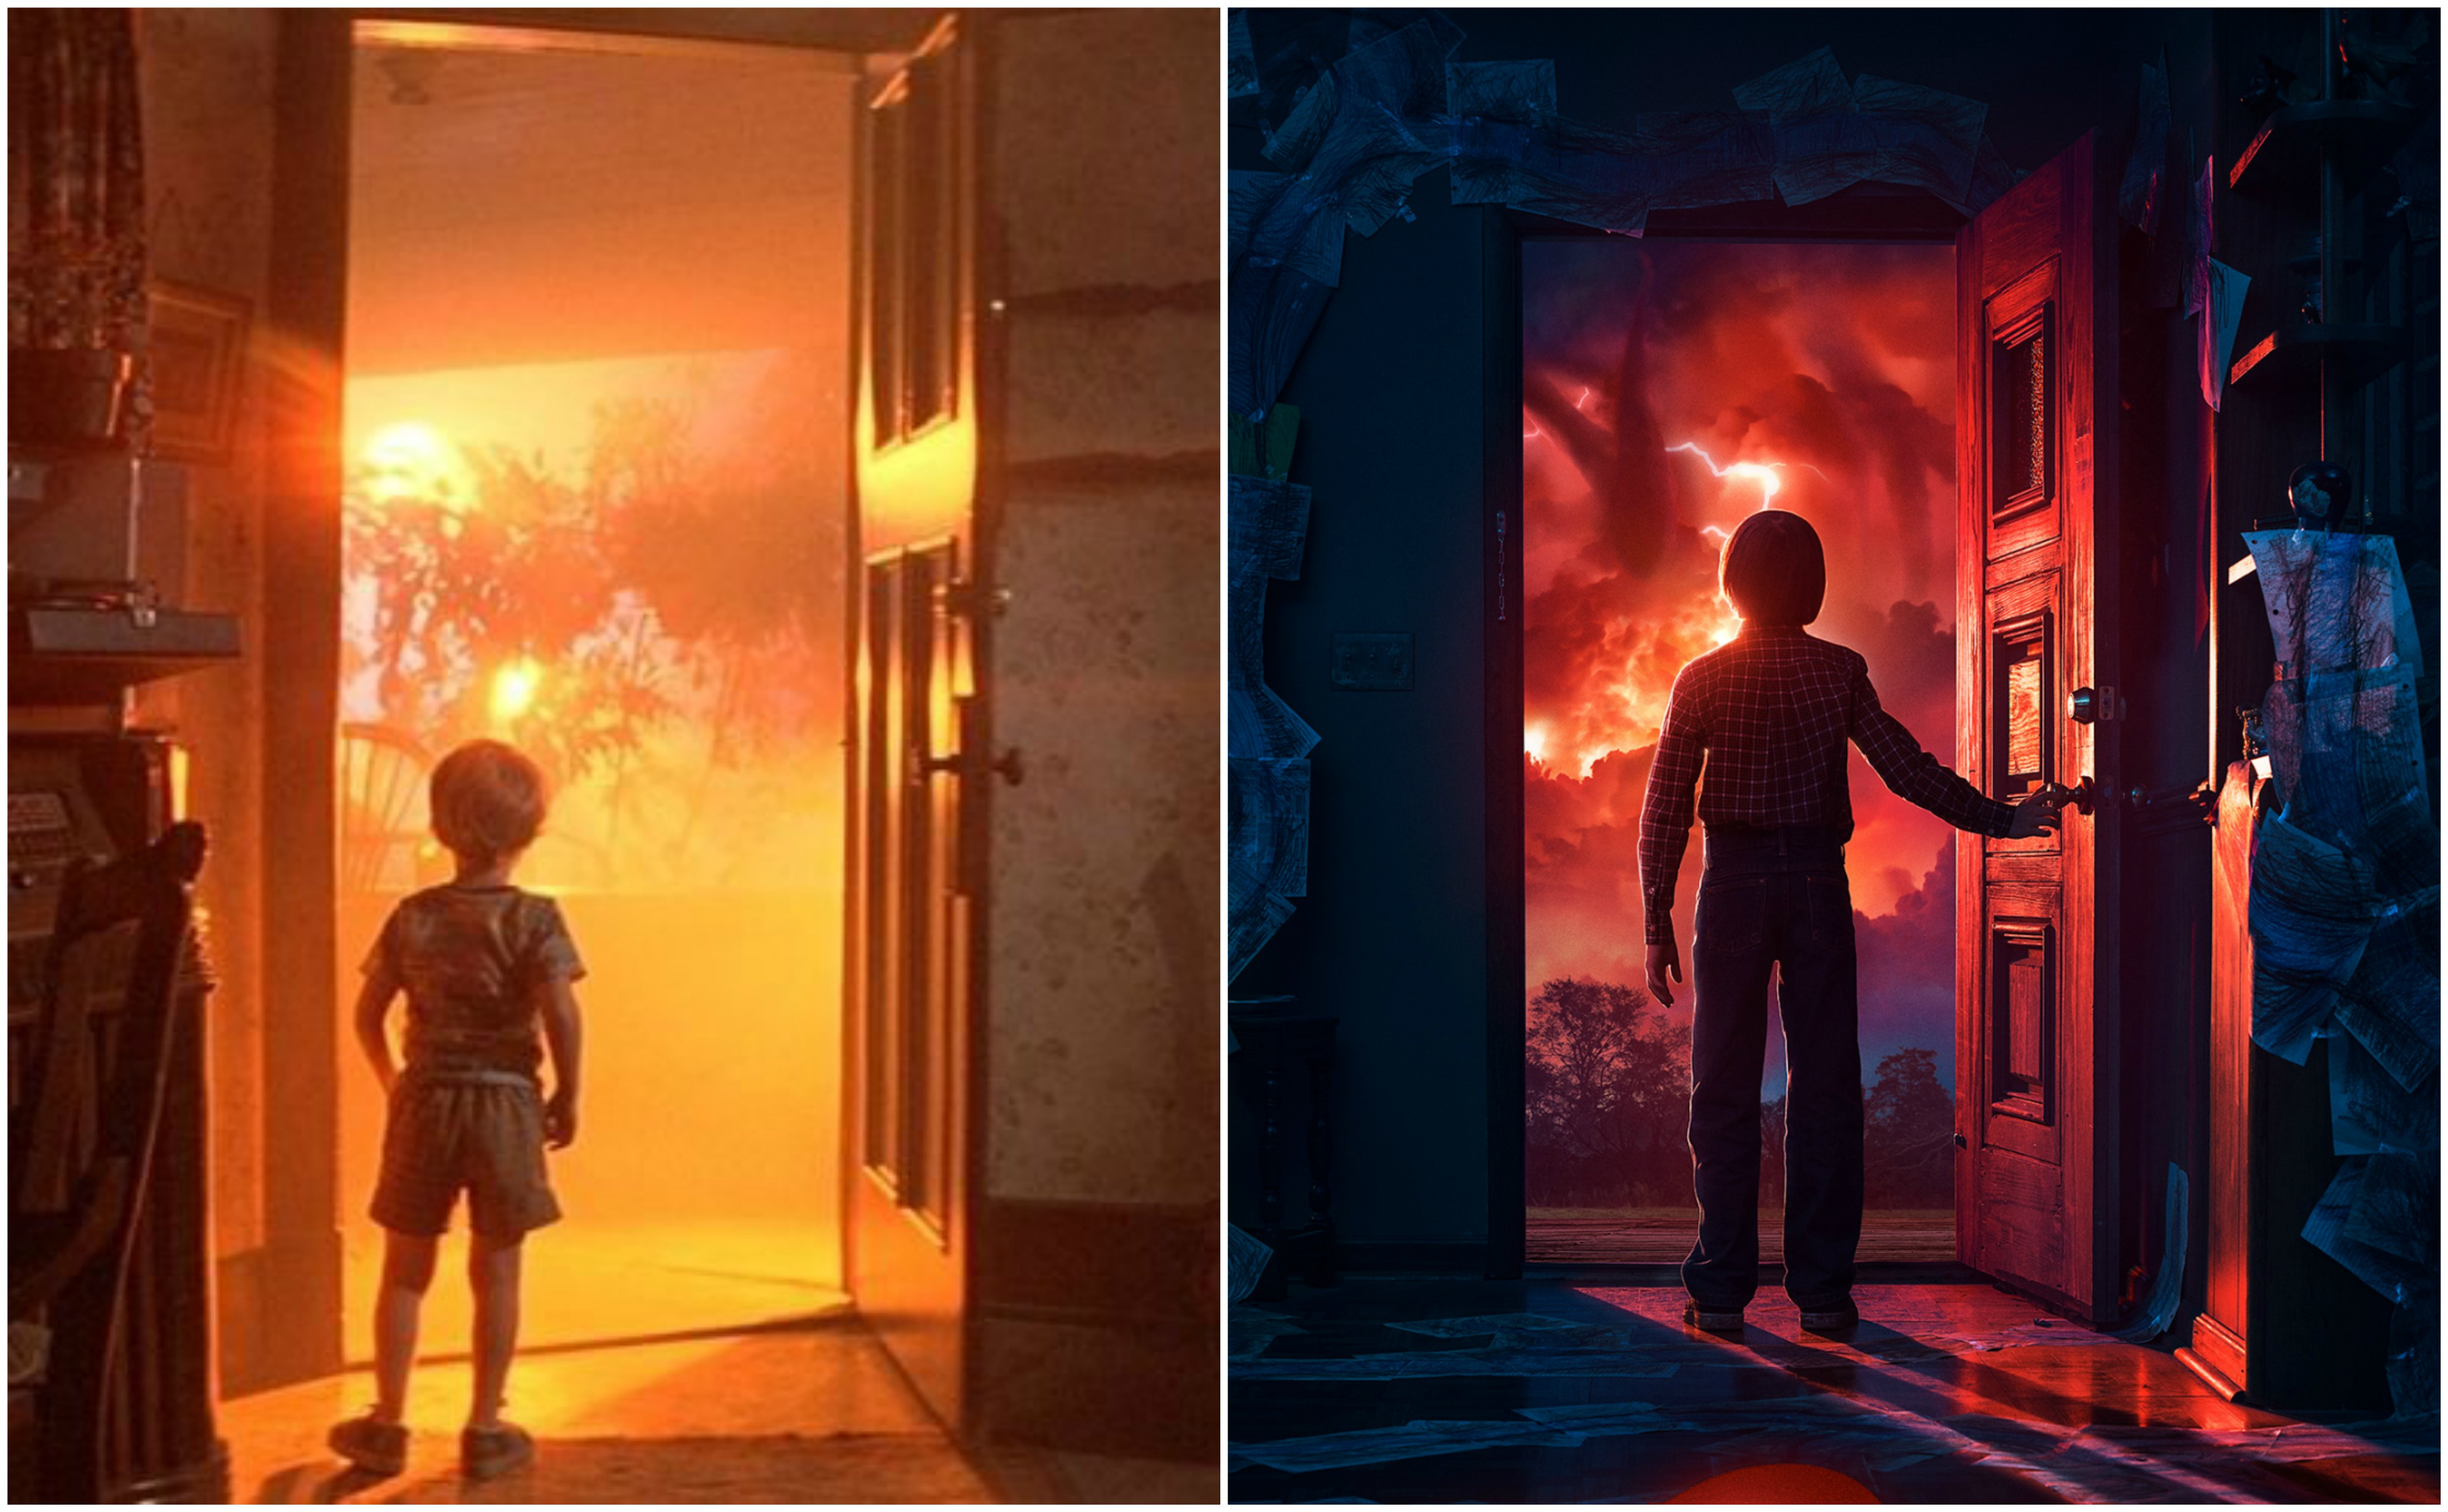 Close Encounters of the Third Kind  and  Stranger ... & Stranger Things 2: Pop Culture References and Homages Episode Guide ...